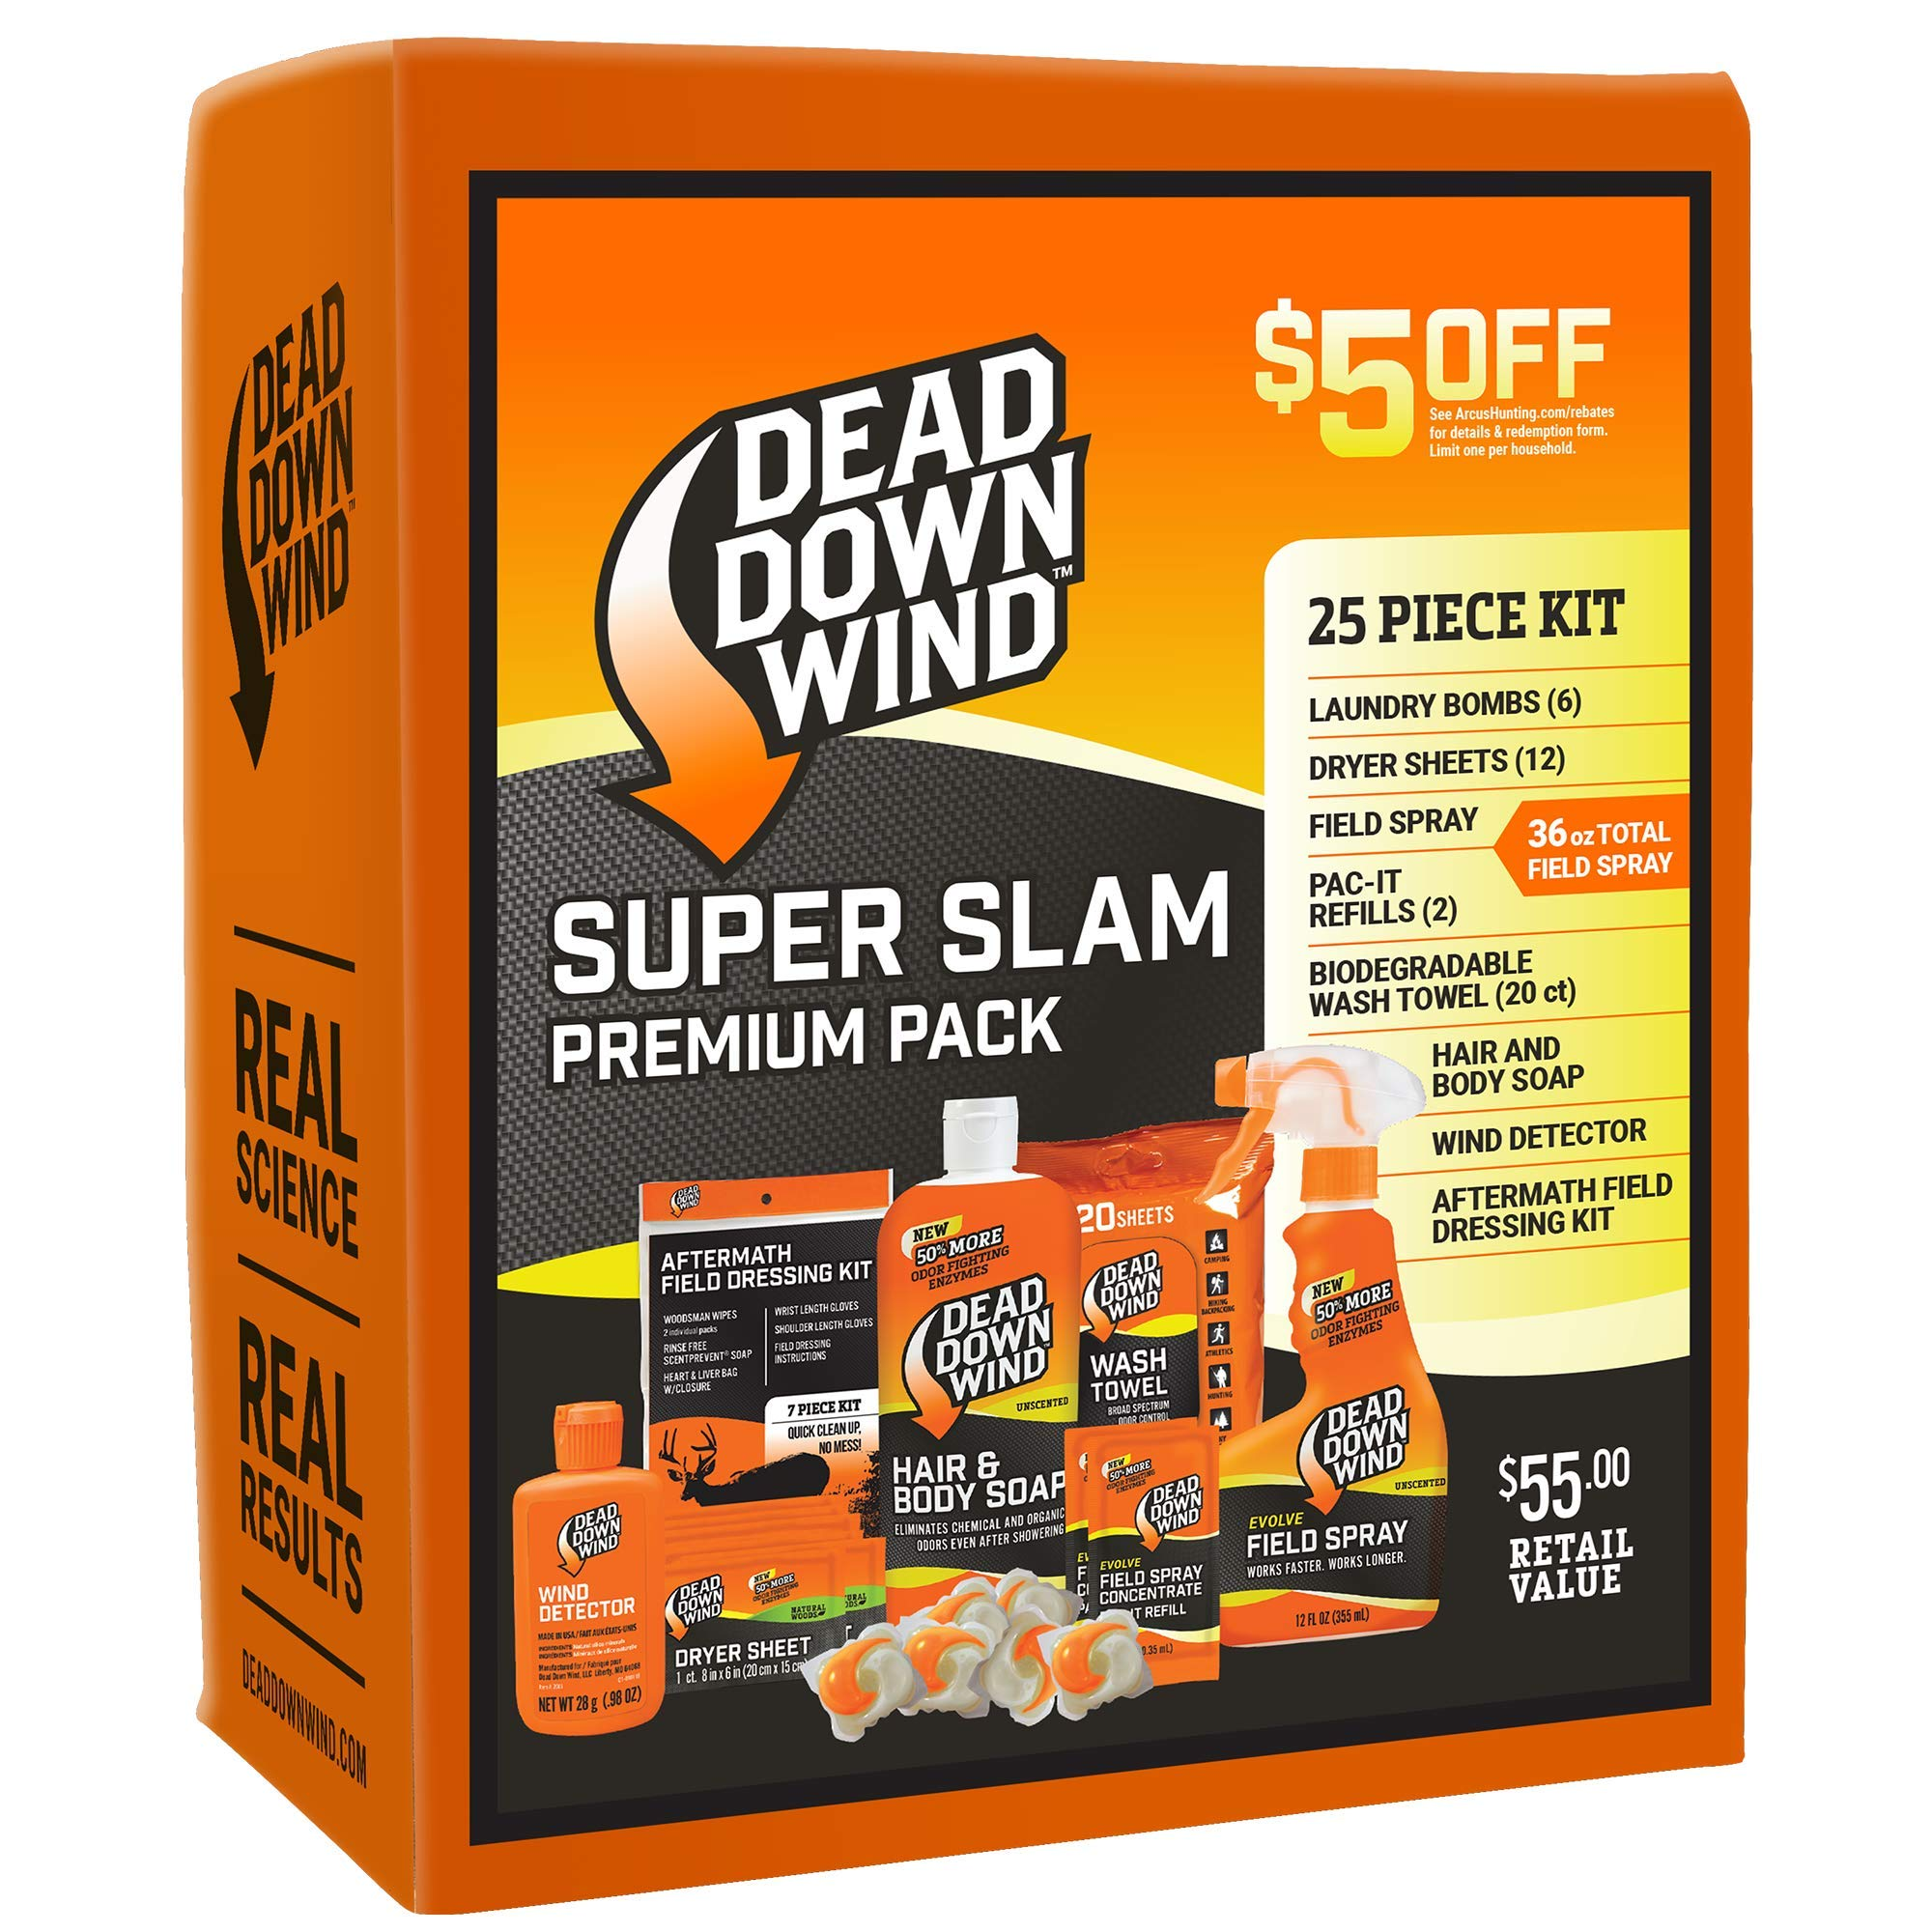 Dead Down Wind Hunting Scent Eliminators – Super Slam Premium Pack, Complete Odor-Elimination System, 25 Piece Kit